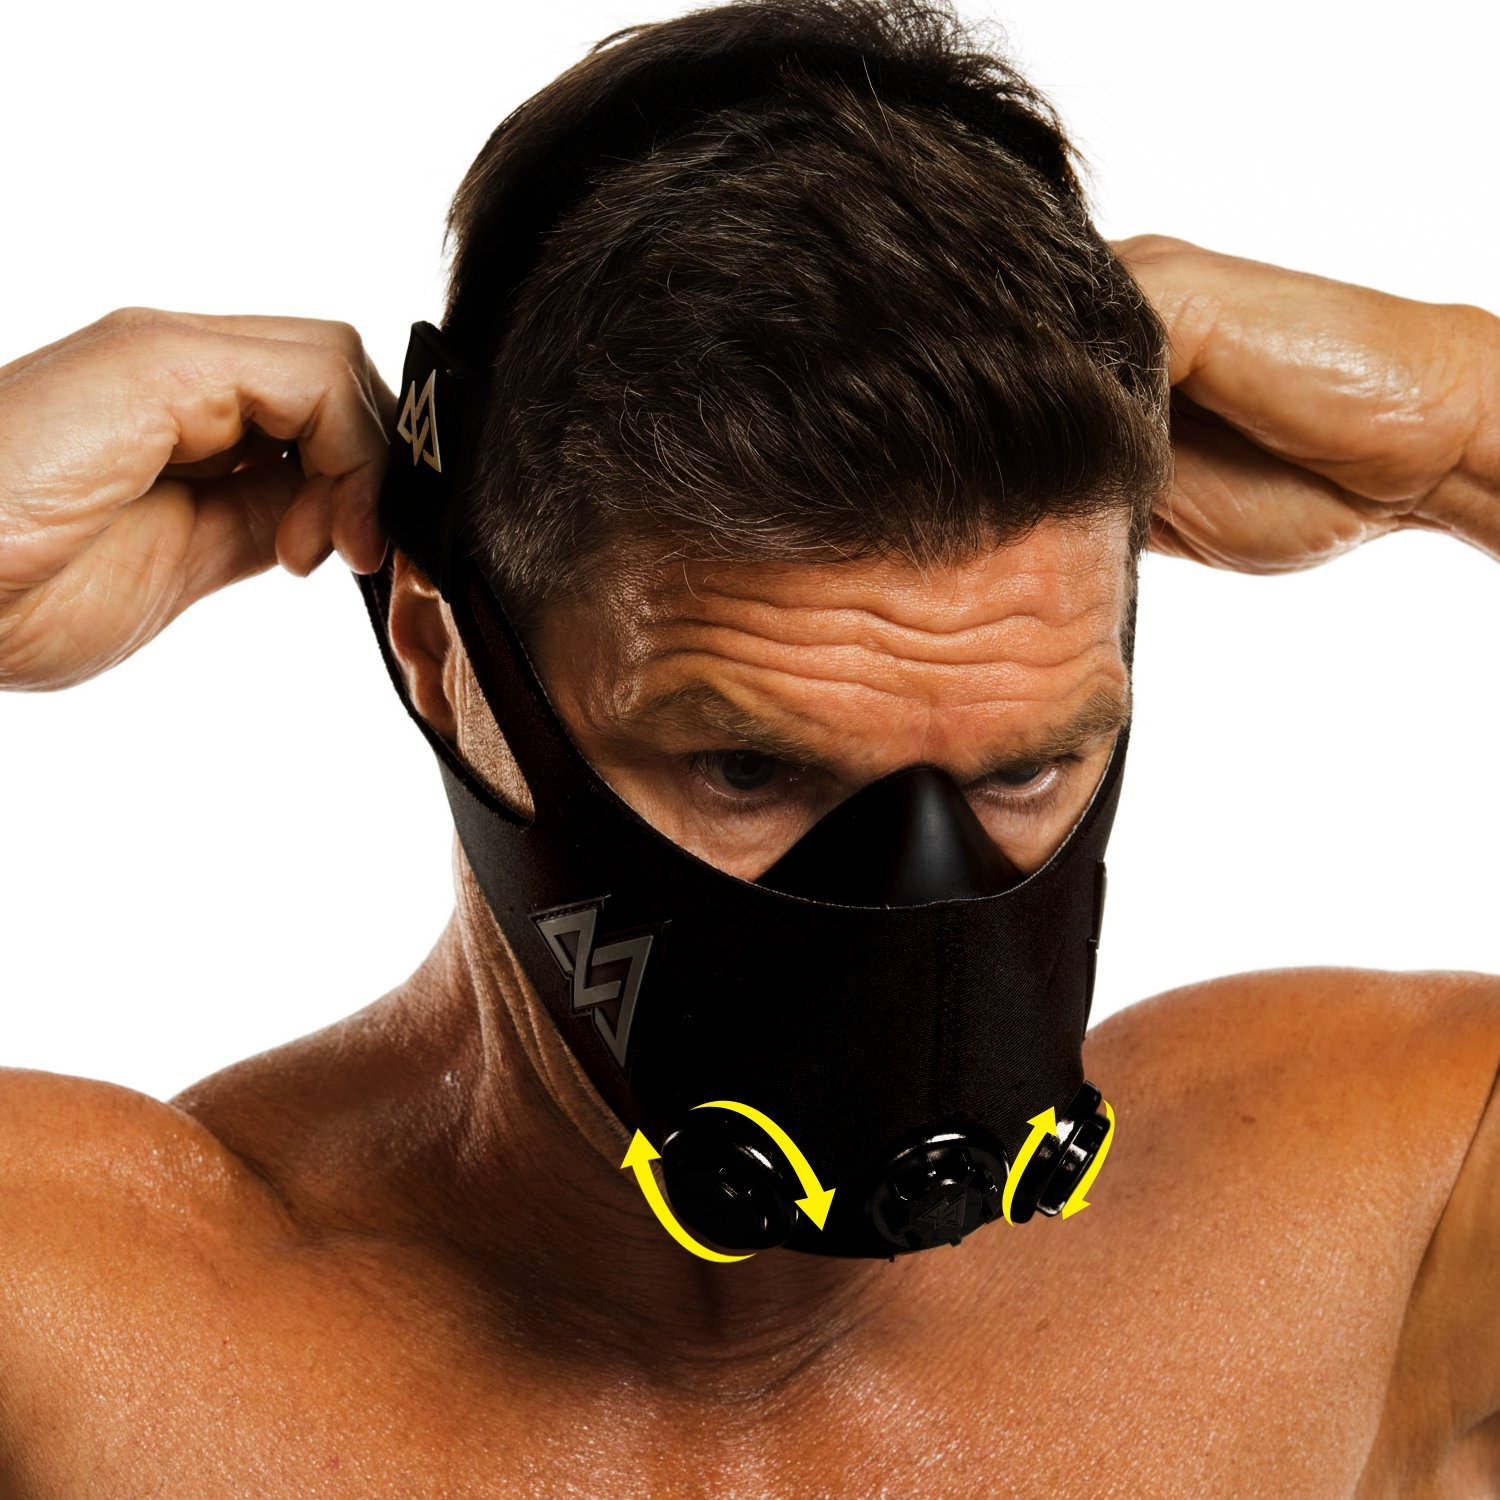 Training Mask 2.0 Workout Fitness Mask for Running and Breathing Resistance Training, Elevation Mask, Cardio Mask, Endurance Mask for Fitness (Black + Turn Flow, Medium)